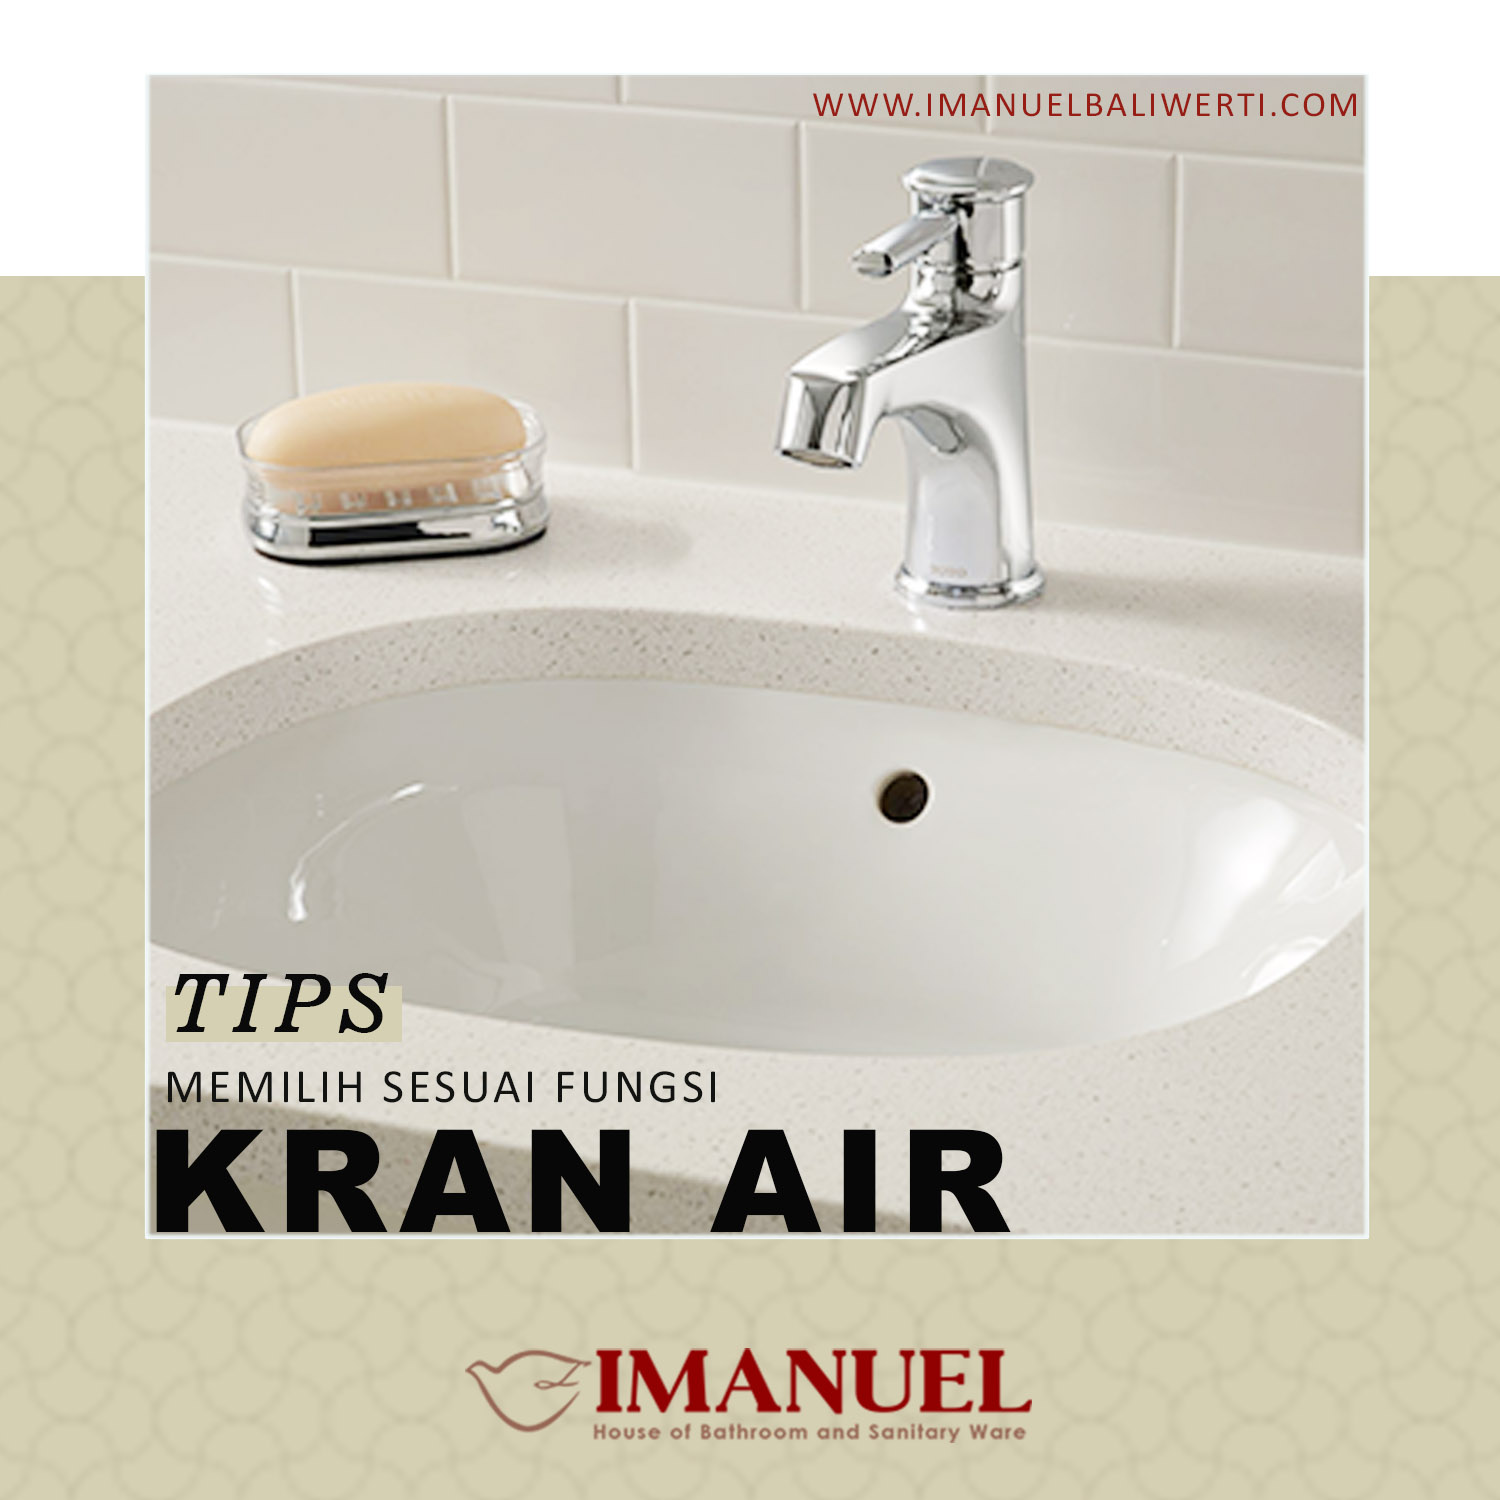 tips membeli kran air